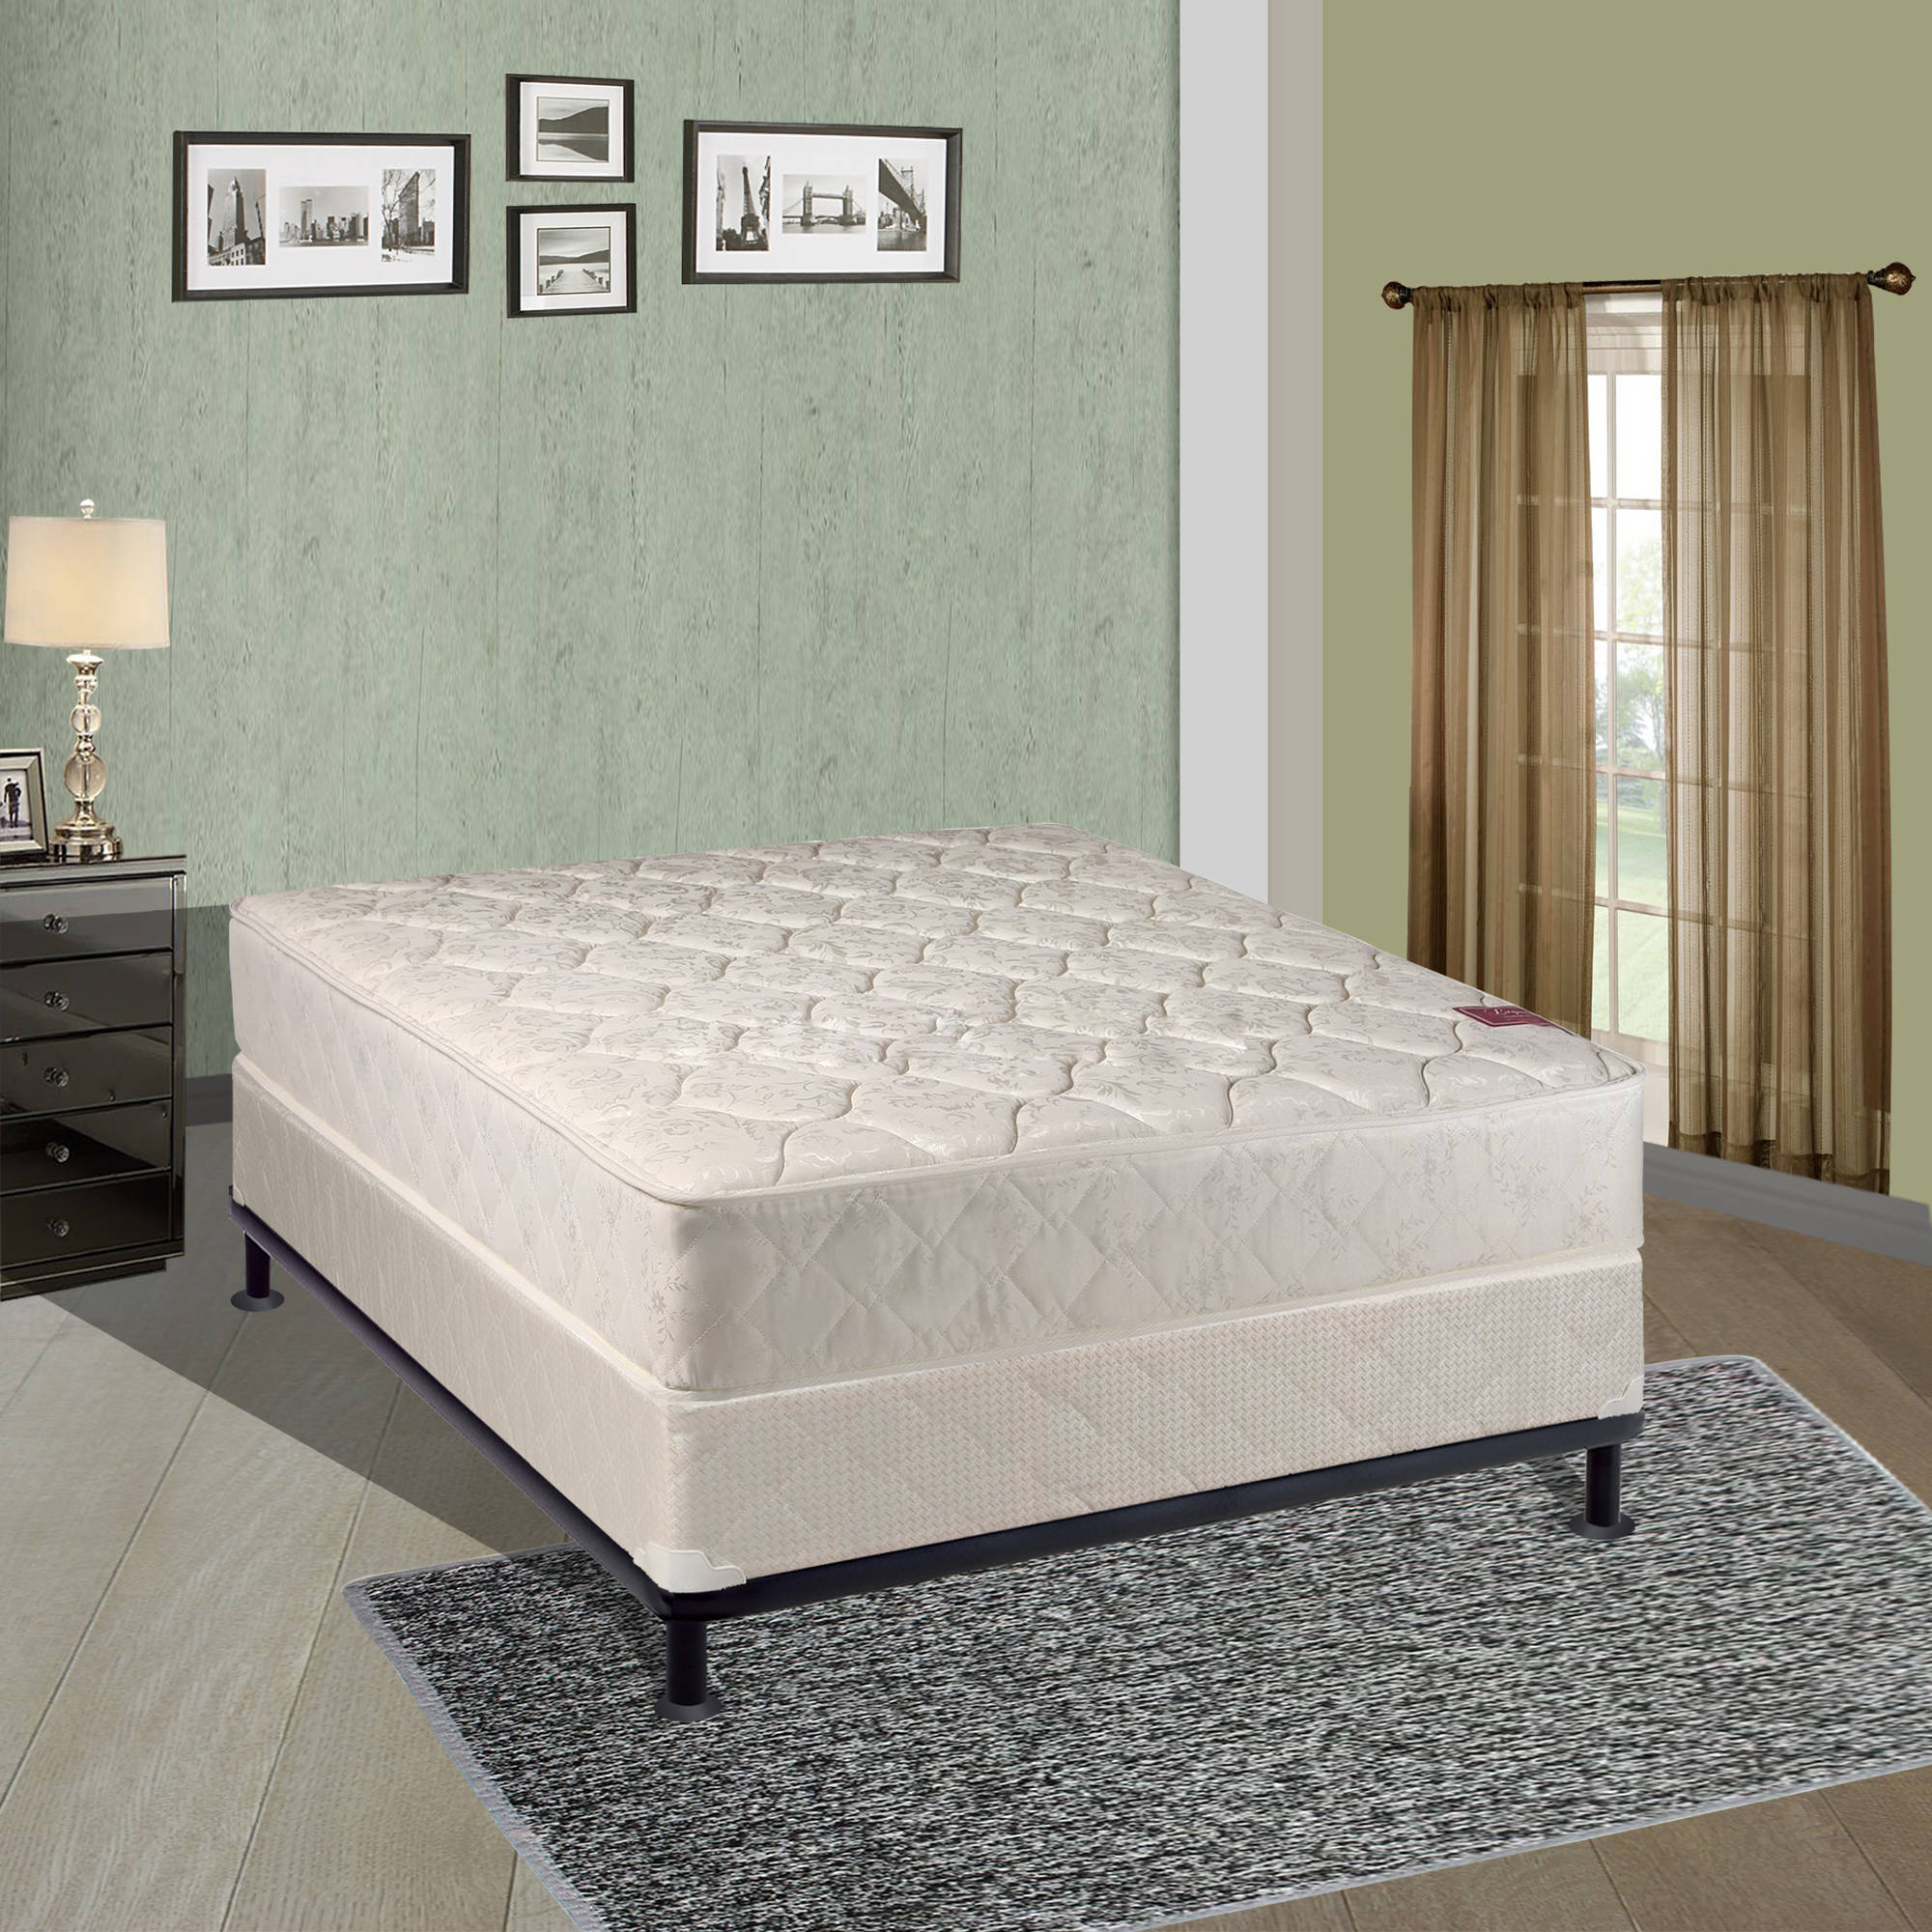 "Continental Sleep 8"" Fully Assembled Orthopedic Mattress and Box Spring, Multiple Sizes by Continental Sleep"